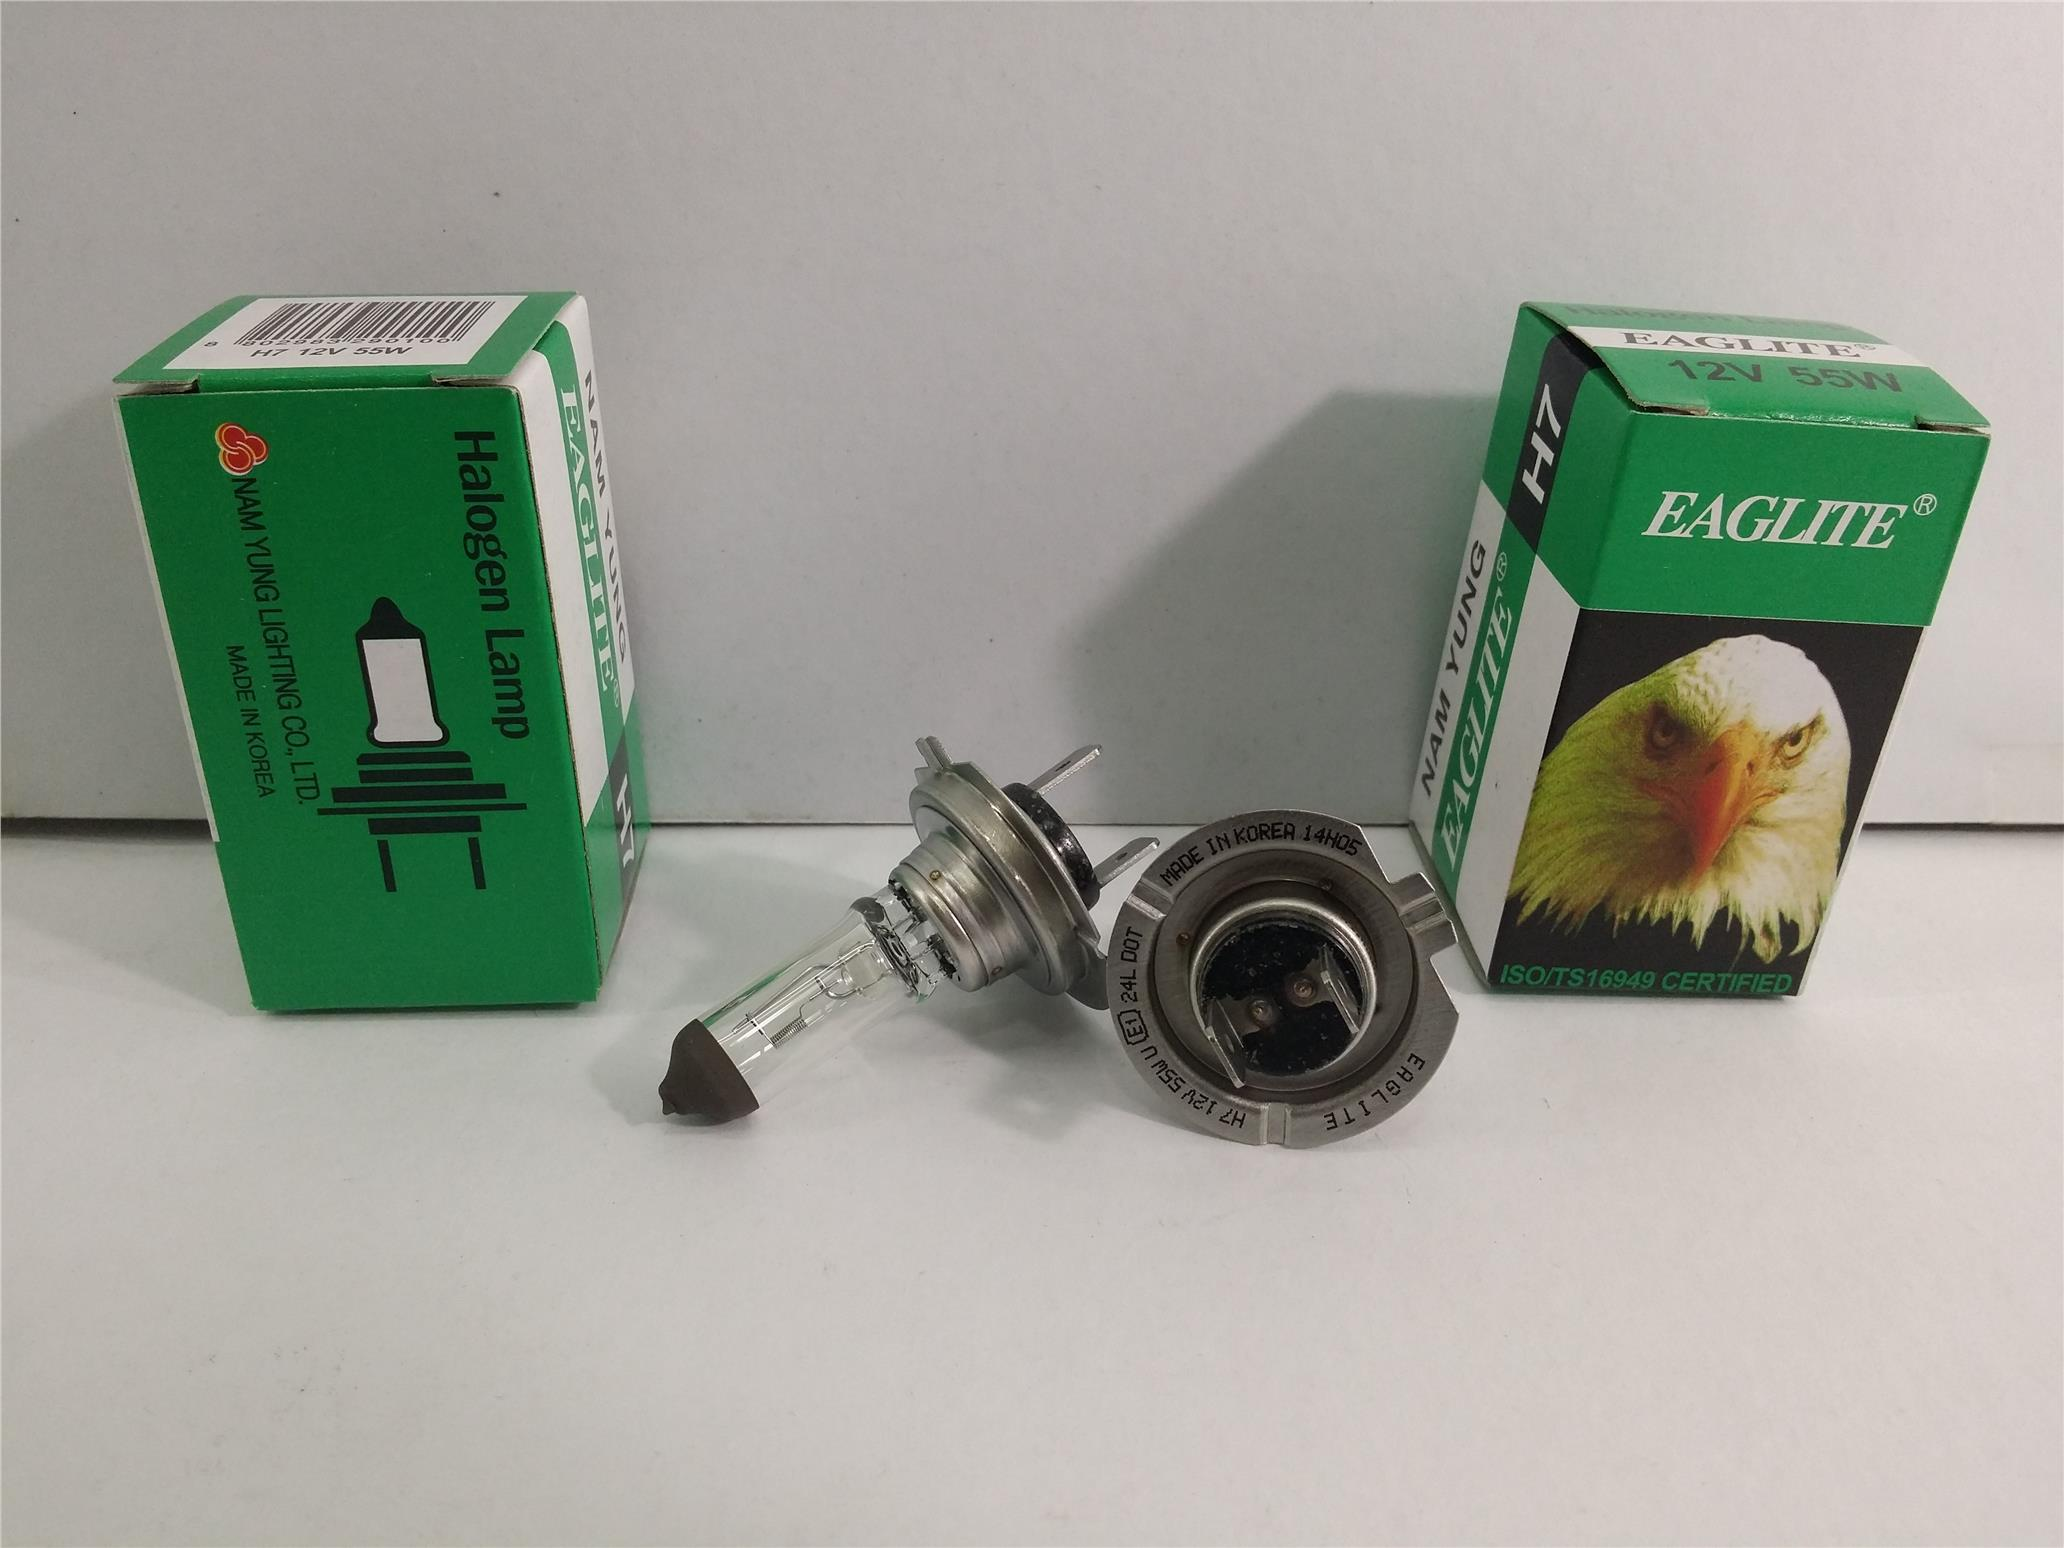 Eagleye H7 Bulb Set 2 Pieces 12V 55W Made In Korea